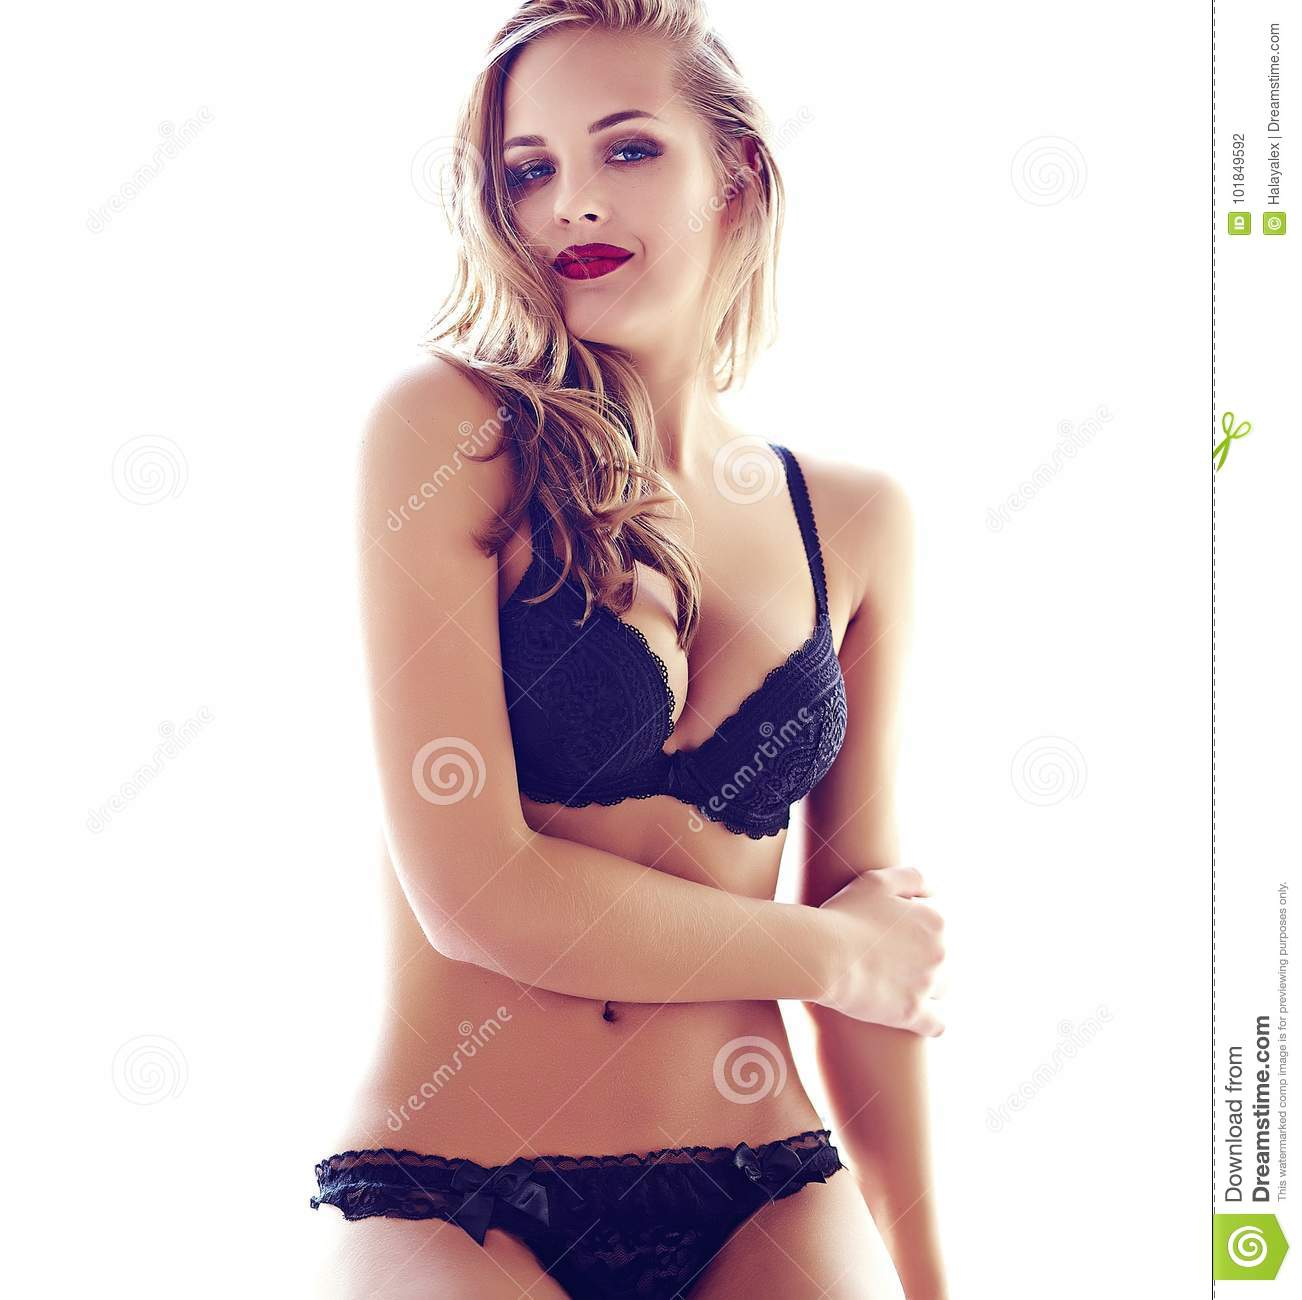 566702fcc Fashion portrait of beautiful young adult blond woman model wearing black  erotic lingerie posing in light interior in the morning